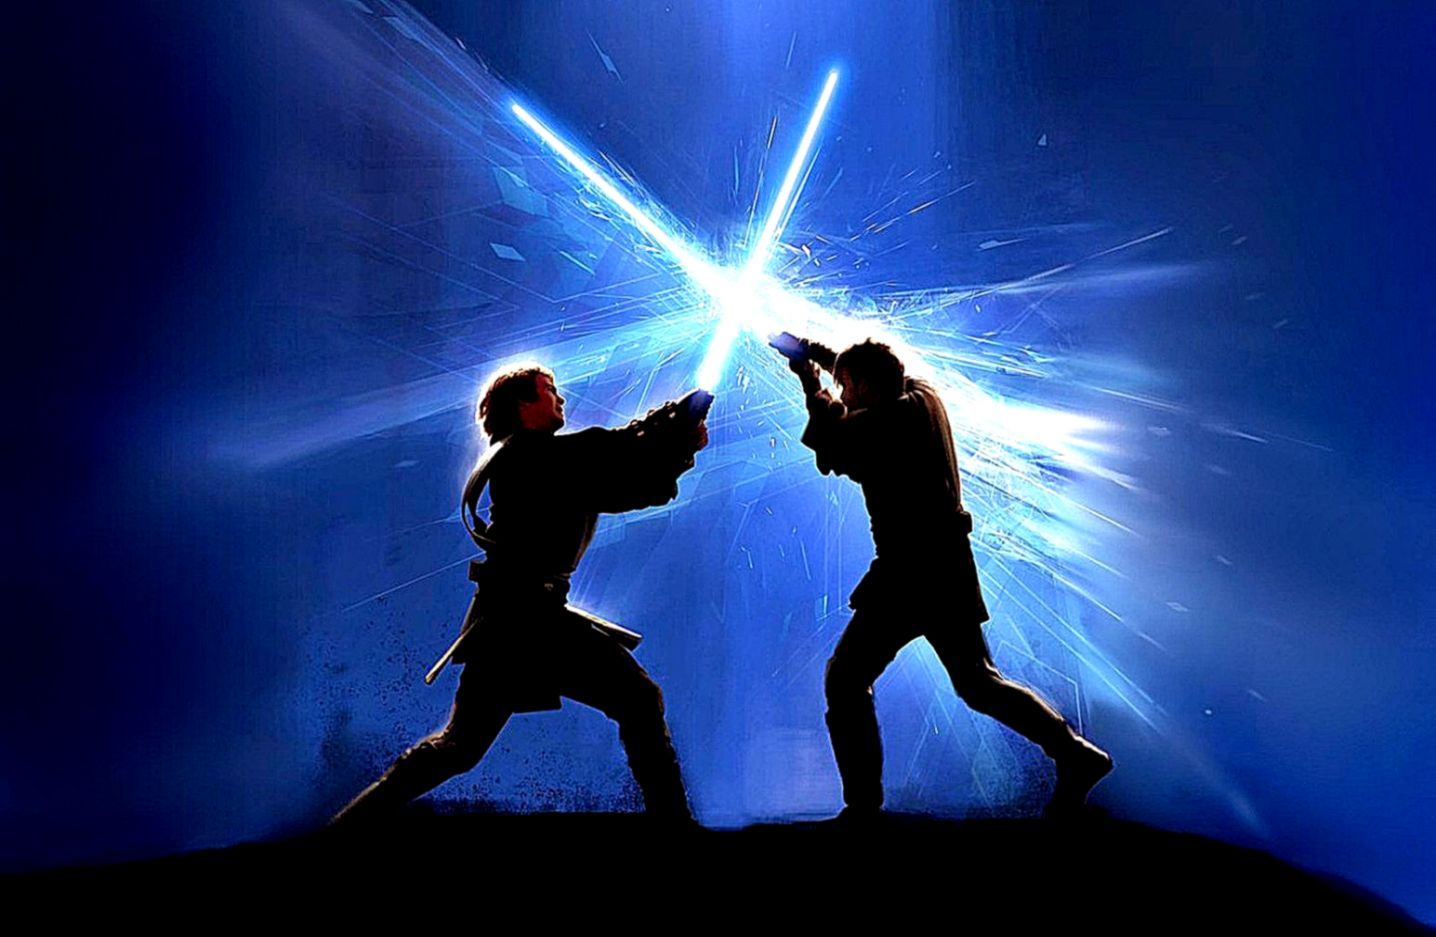 Star Wars Lightsaber Duels Wallpaper Best Free Hd Wallpaper Men